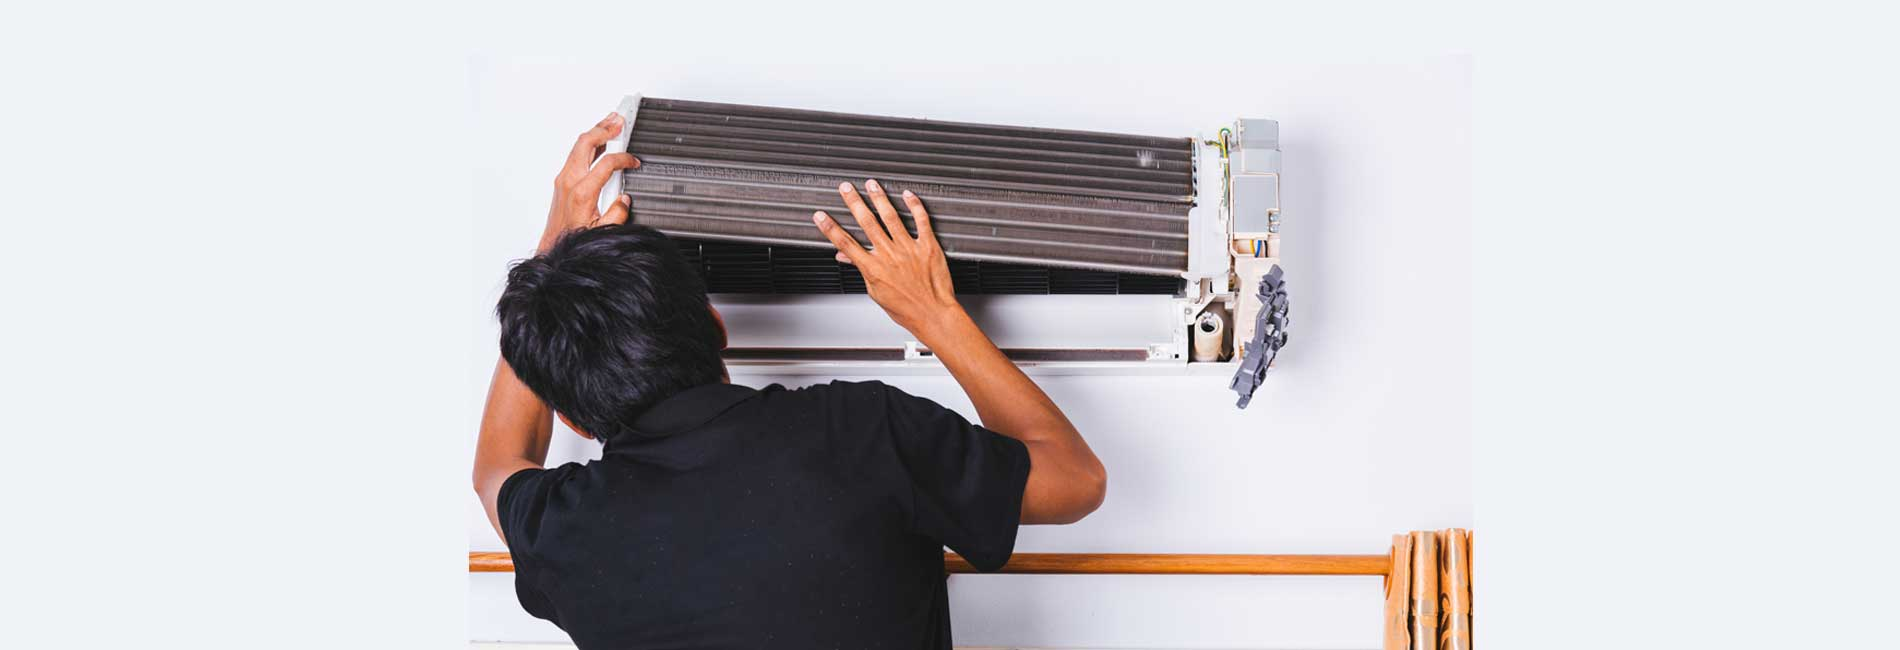 Bluestar AC Uninstallation and Installation in Puthagaram